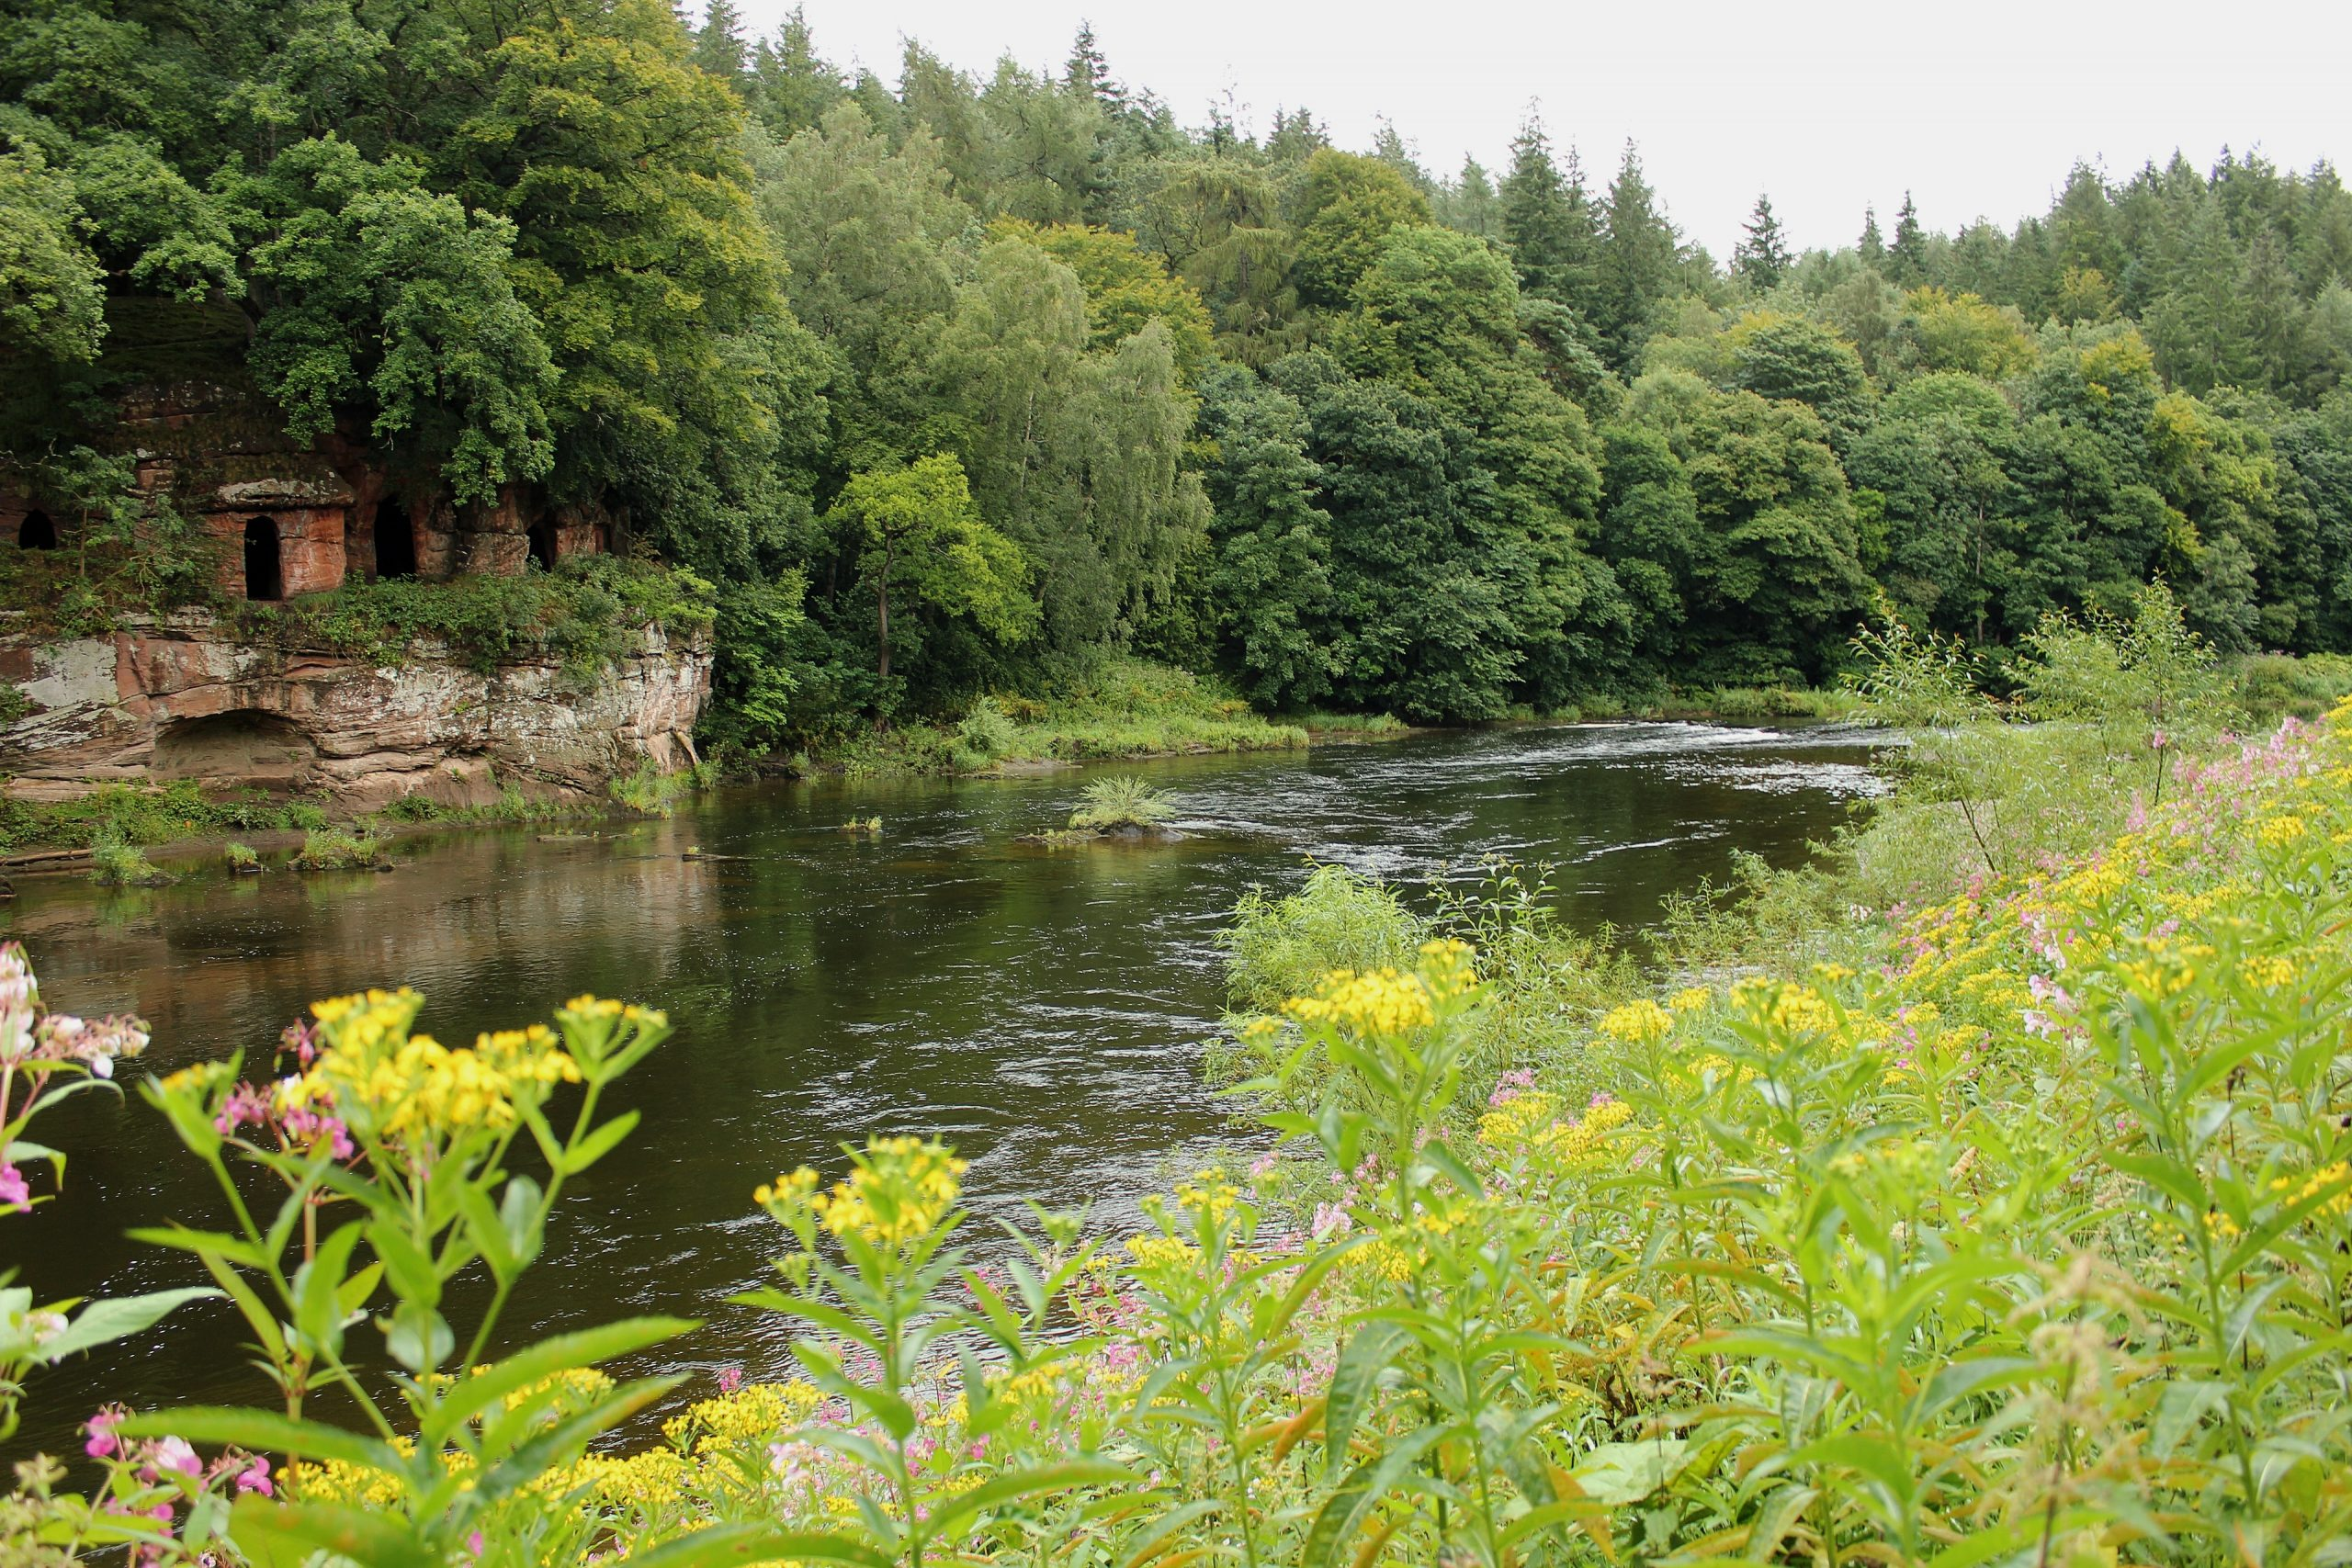 River Eden Cumbria Fly Fishing, Tufton Arms Cumbria, Cumbria Salmon Fly Fishing, Cumbria Trout Fly fishing